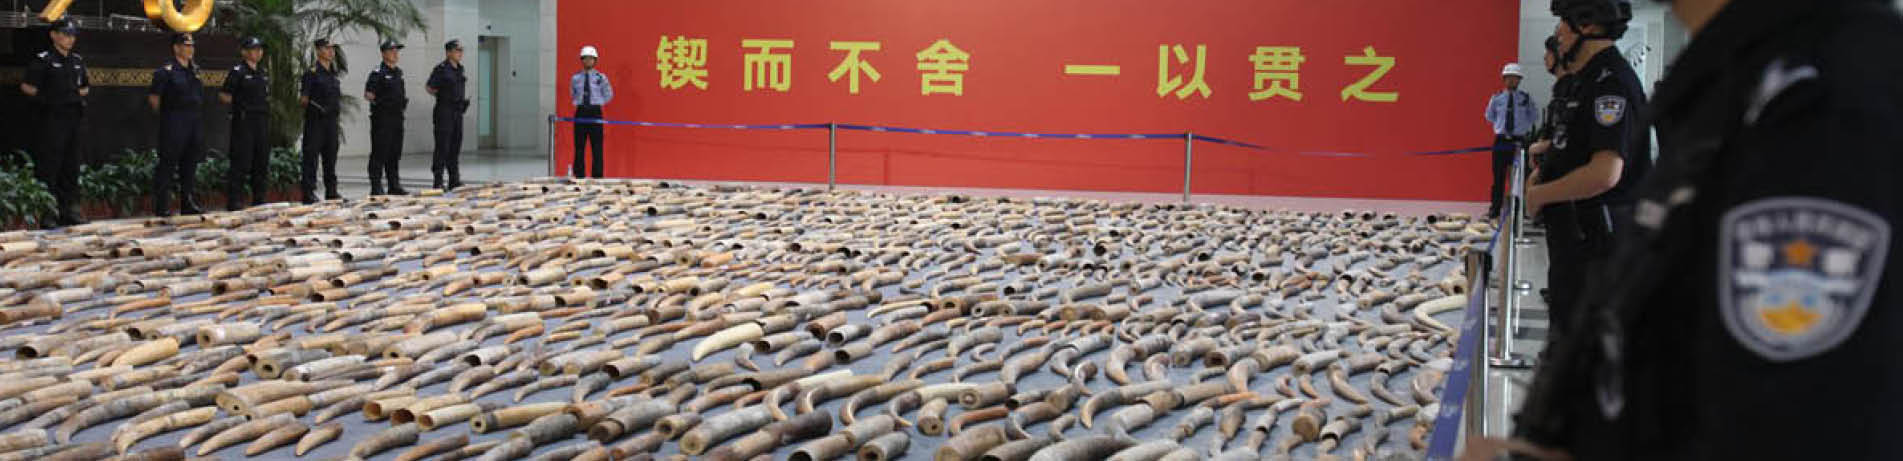 China Customs display ivory seized in the country